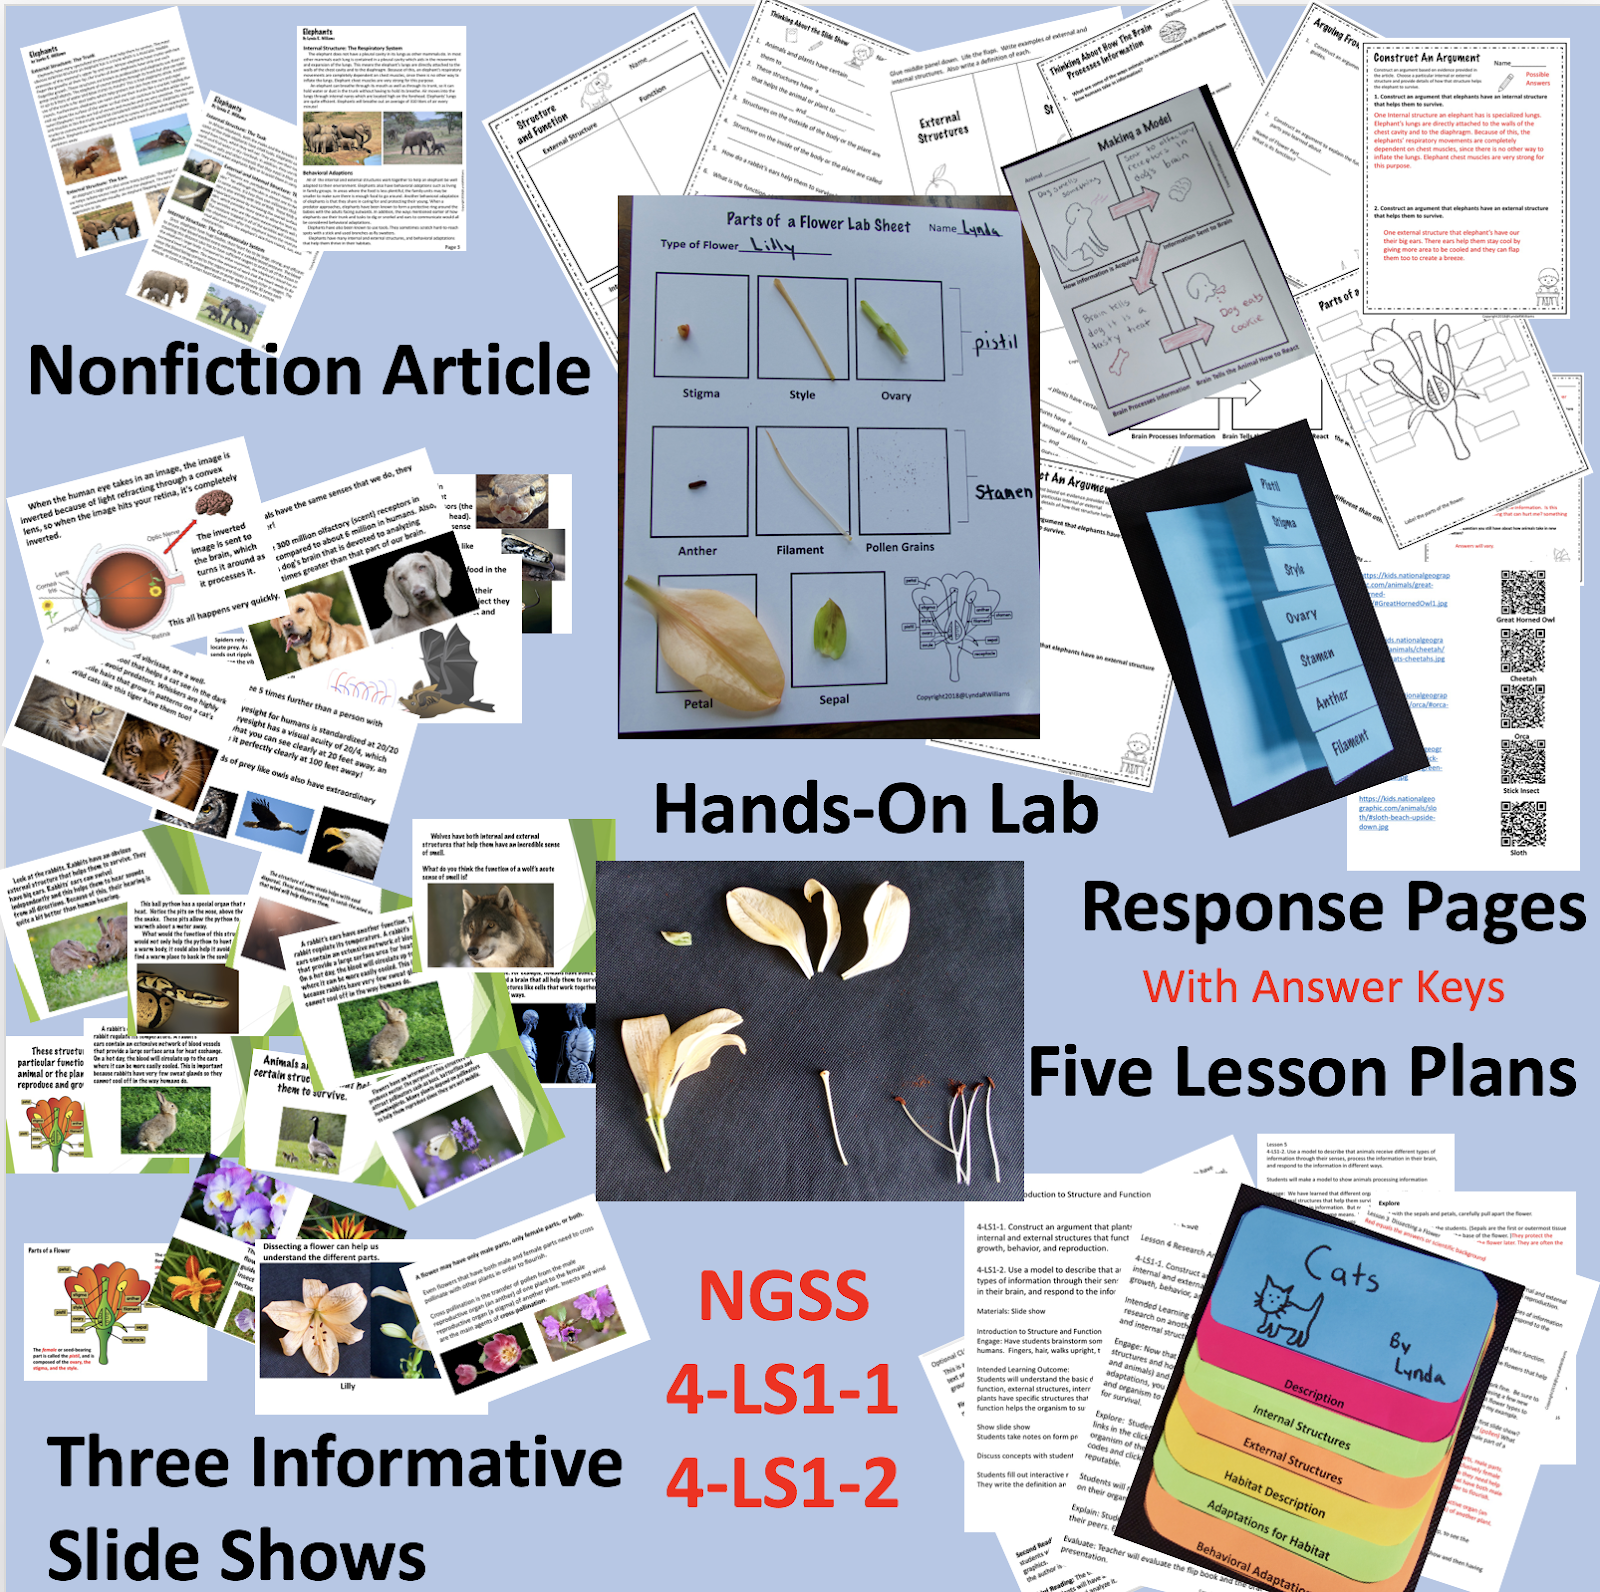 medium resolution of Teaching Science With Lynda: Dissecting a Flower to Teach Structure and  Function NGSS4-LS1\u003d1 and NGSS 4-LS1-2